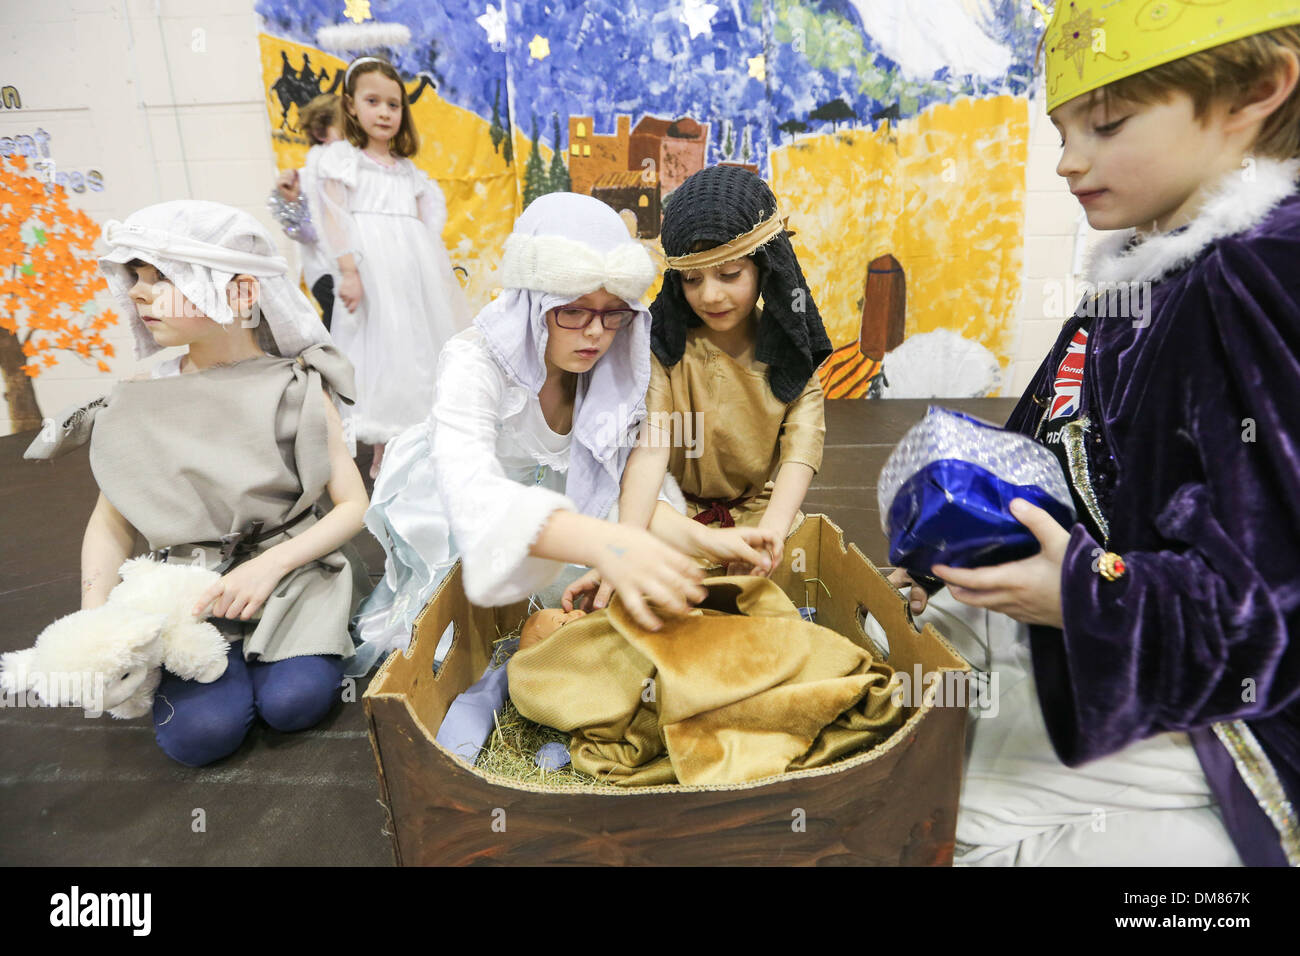 CHILDREN FROM LITTLE DOWNHAM PRIMARY SCHOOL,CAMBRIDGESHIRE, REHEARSING FOR THE NATIVITY PLAY ON DEC 11TH. - Stock Image